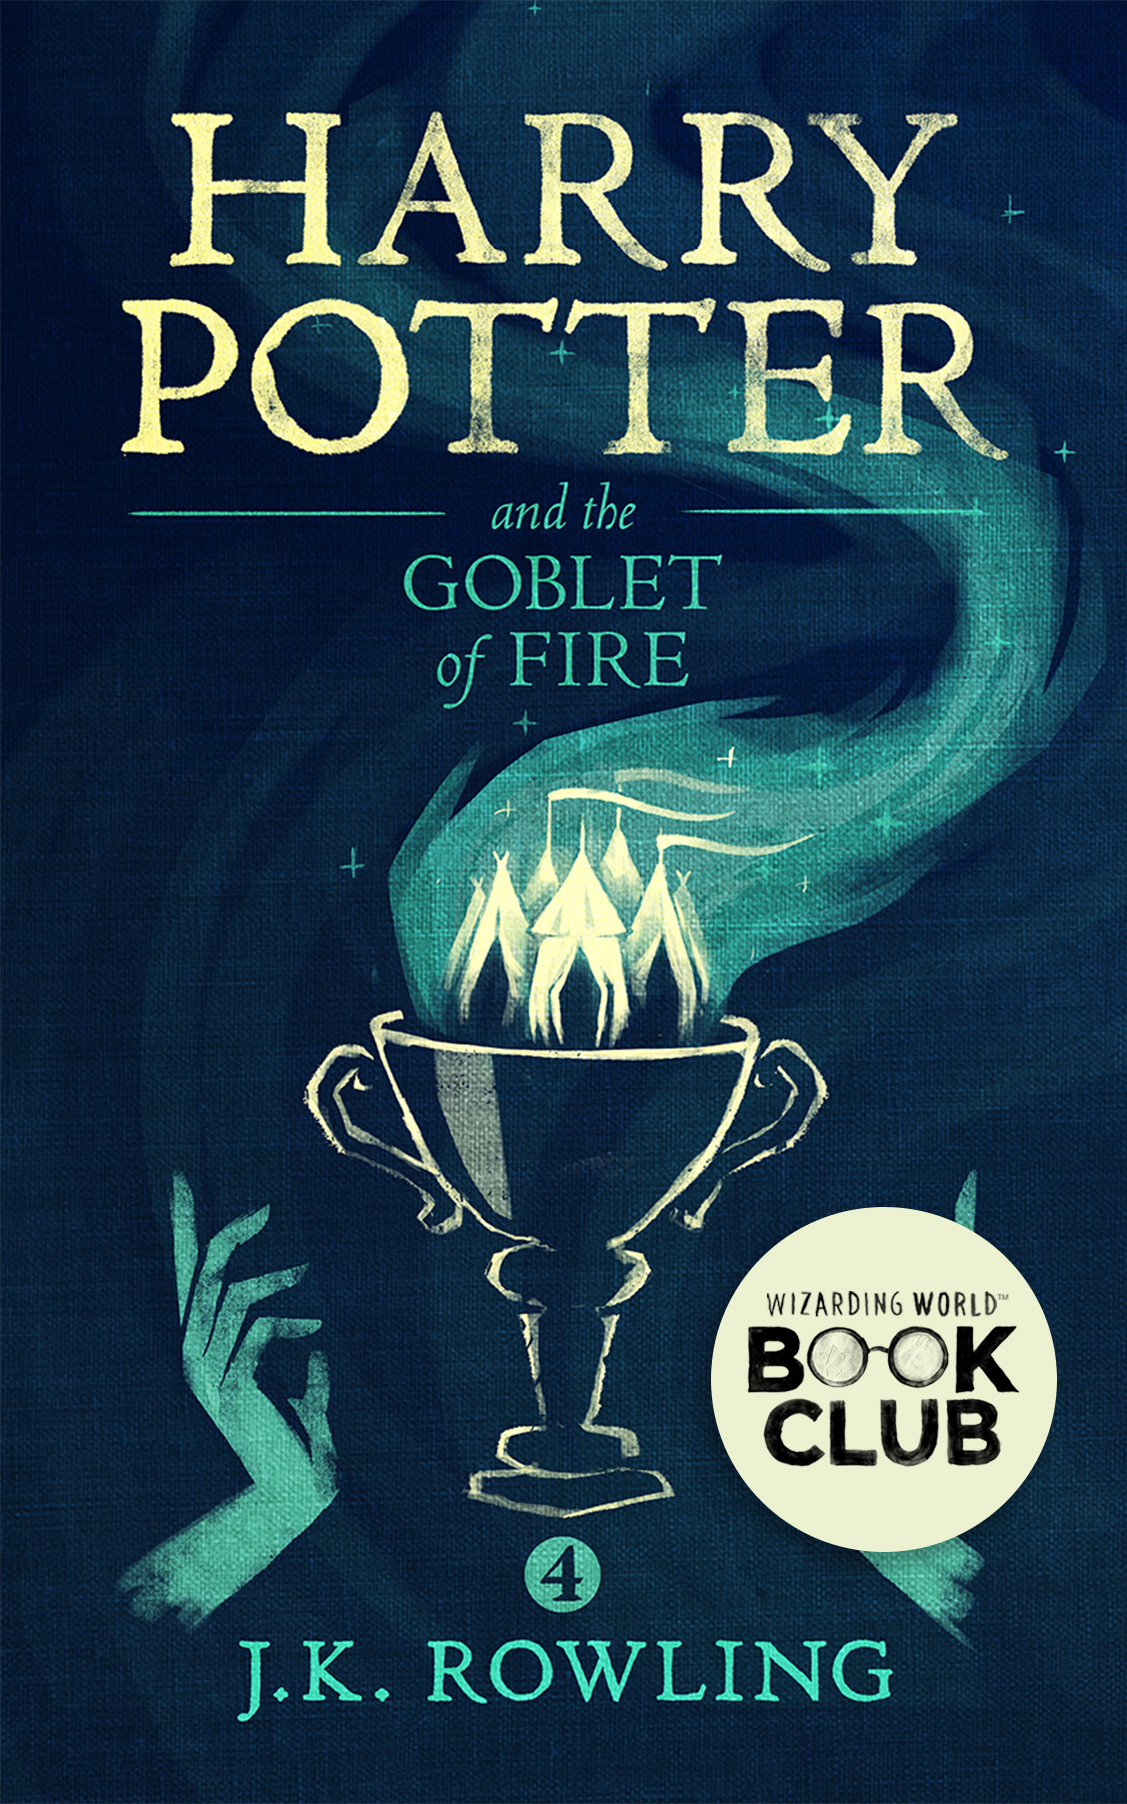 Harry Potter and the Goblet of Fire |